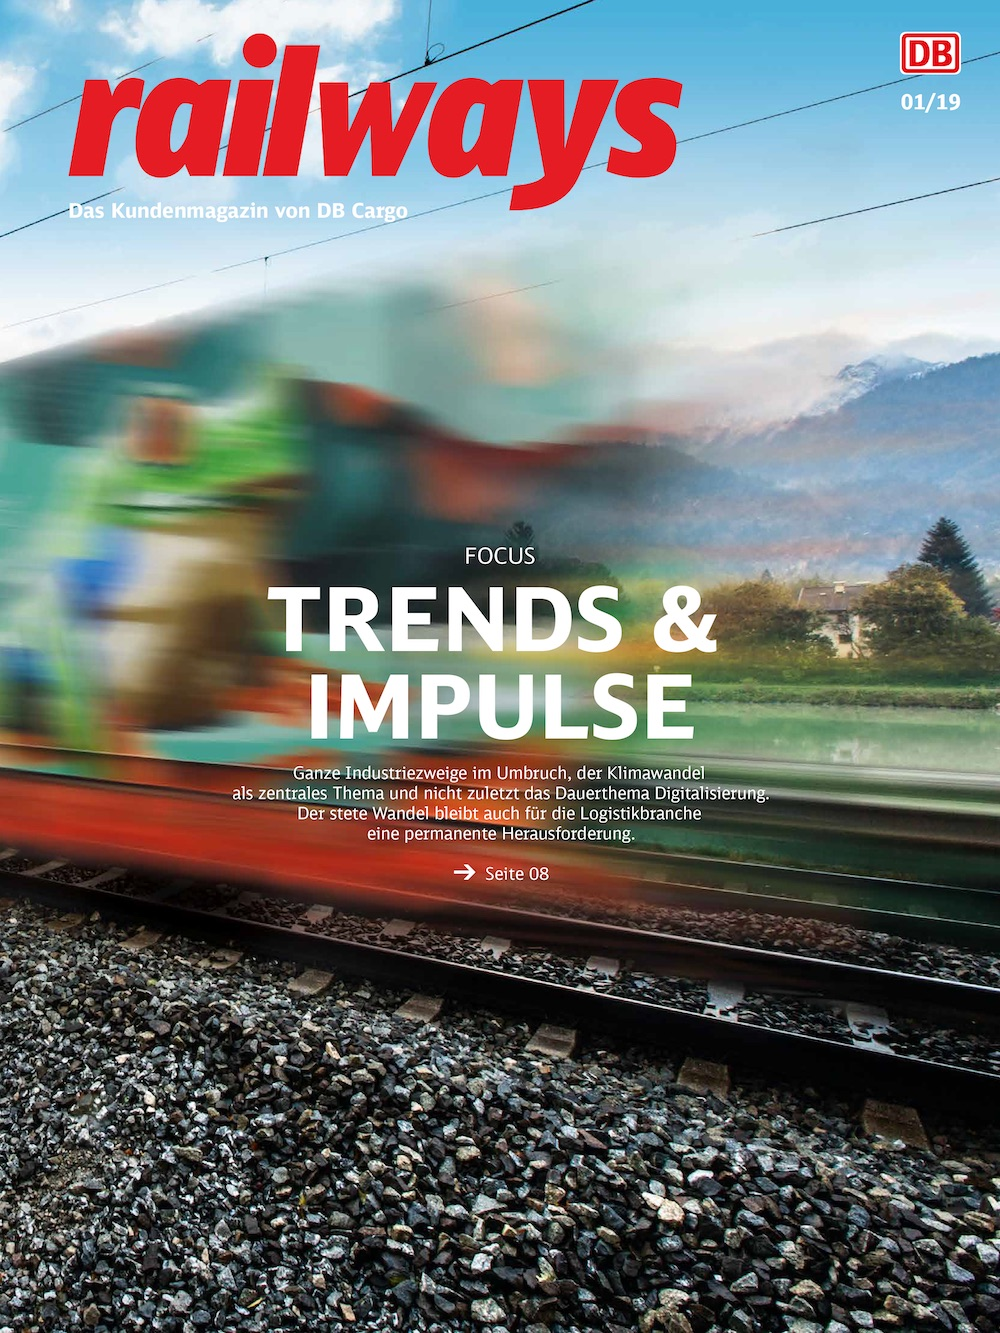 Cover railways 19/1